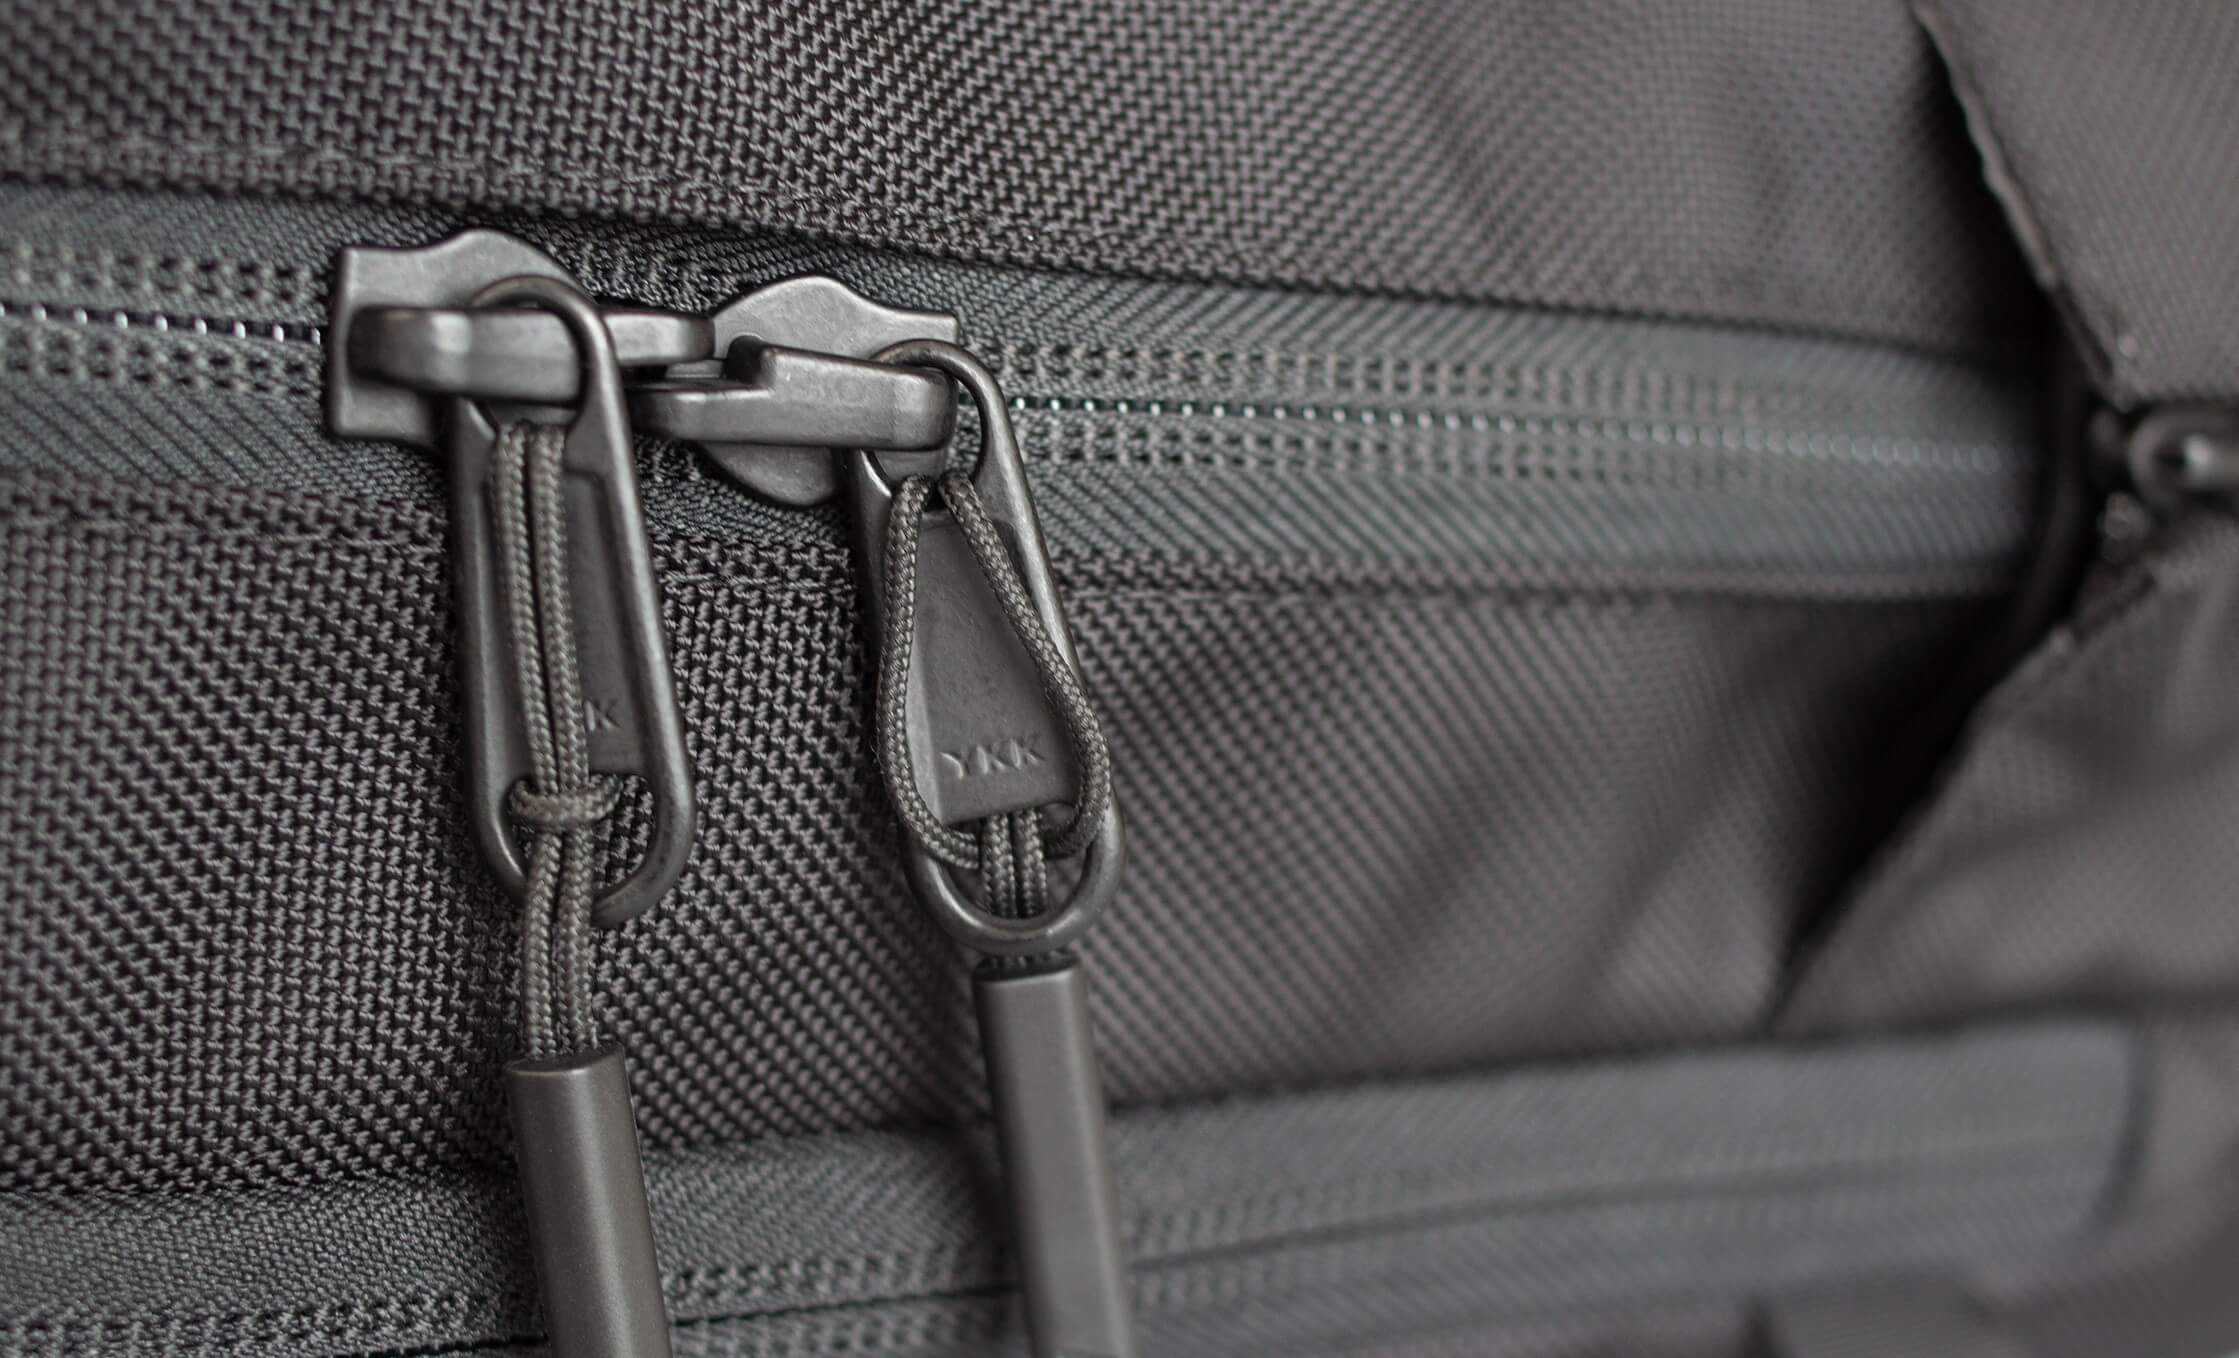 Bag With 2 YKK Zippers